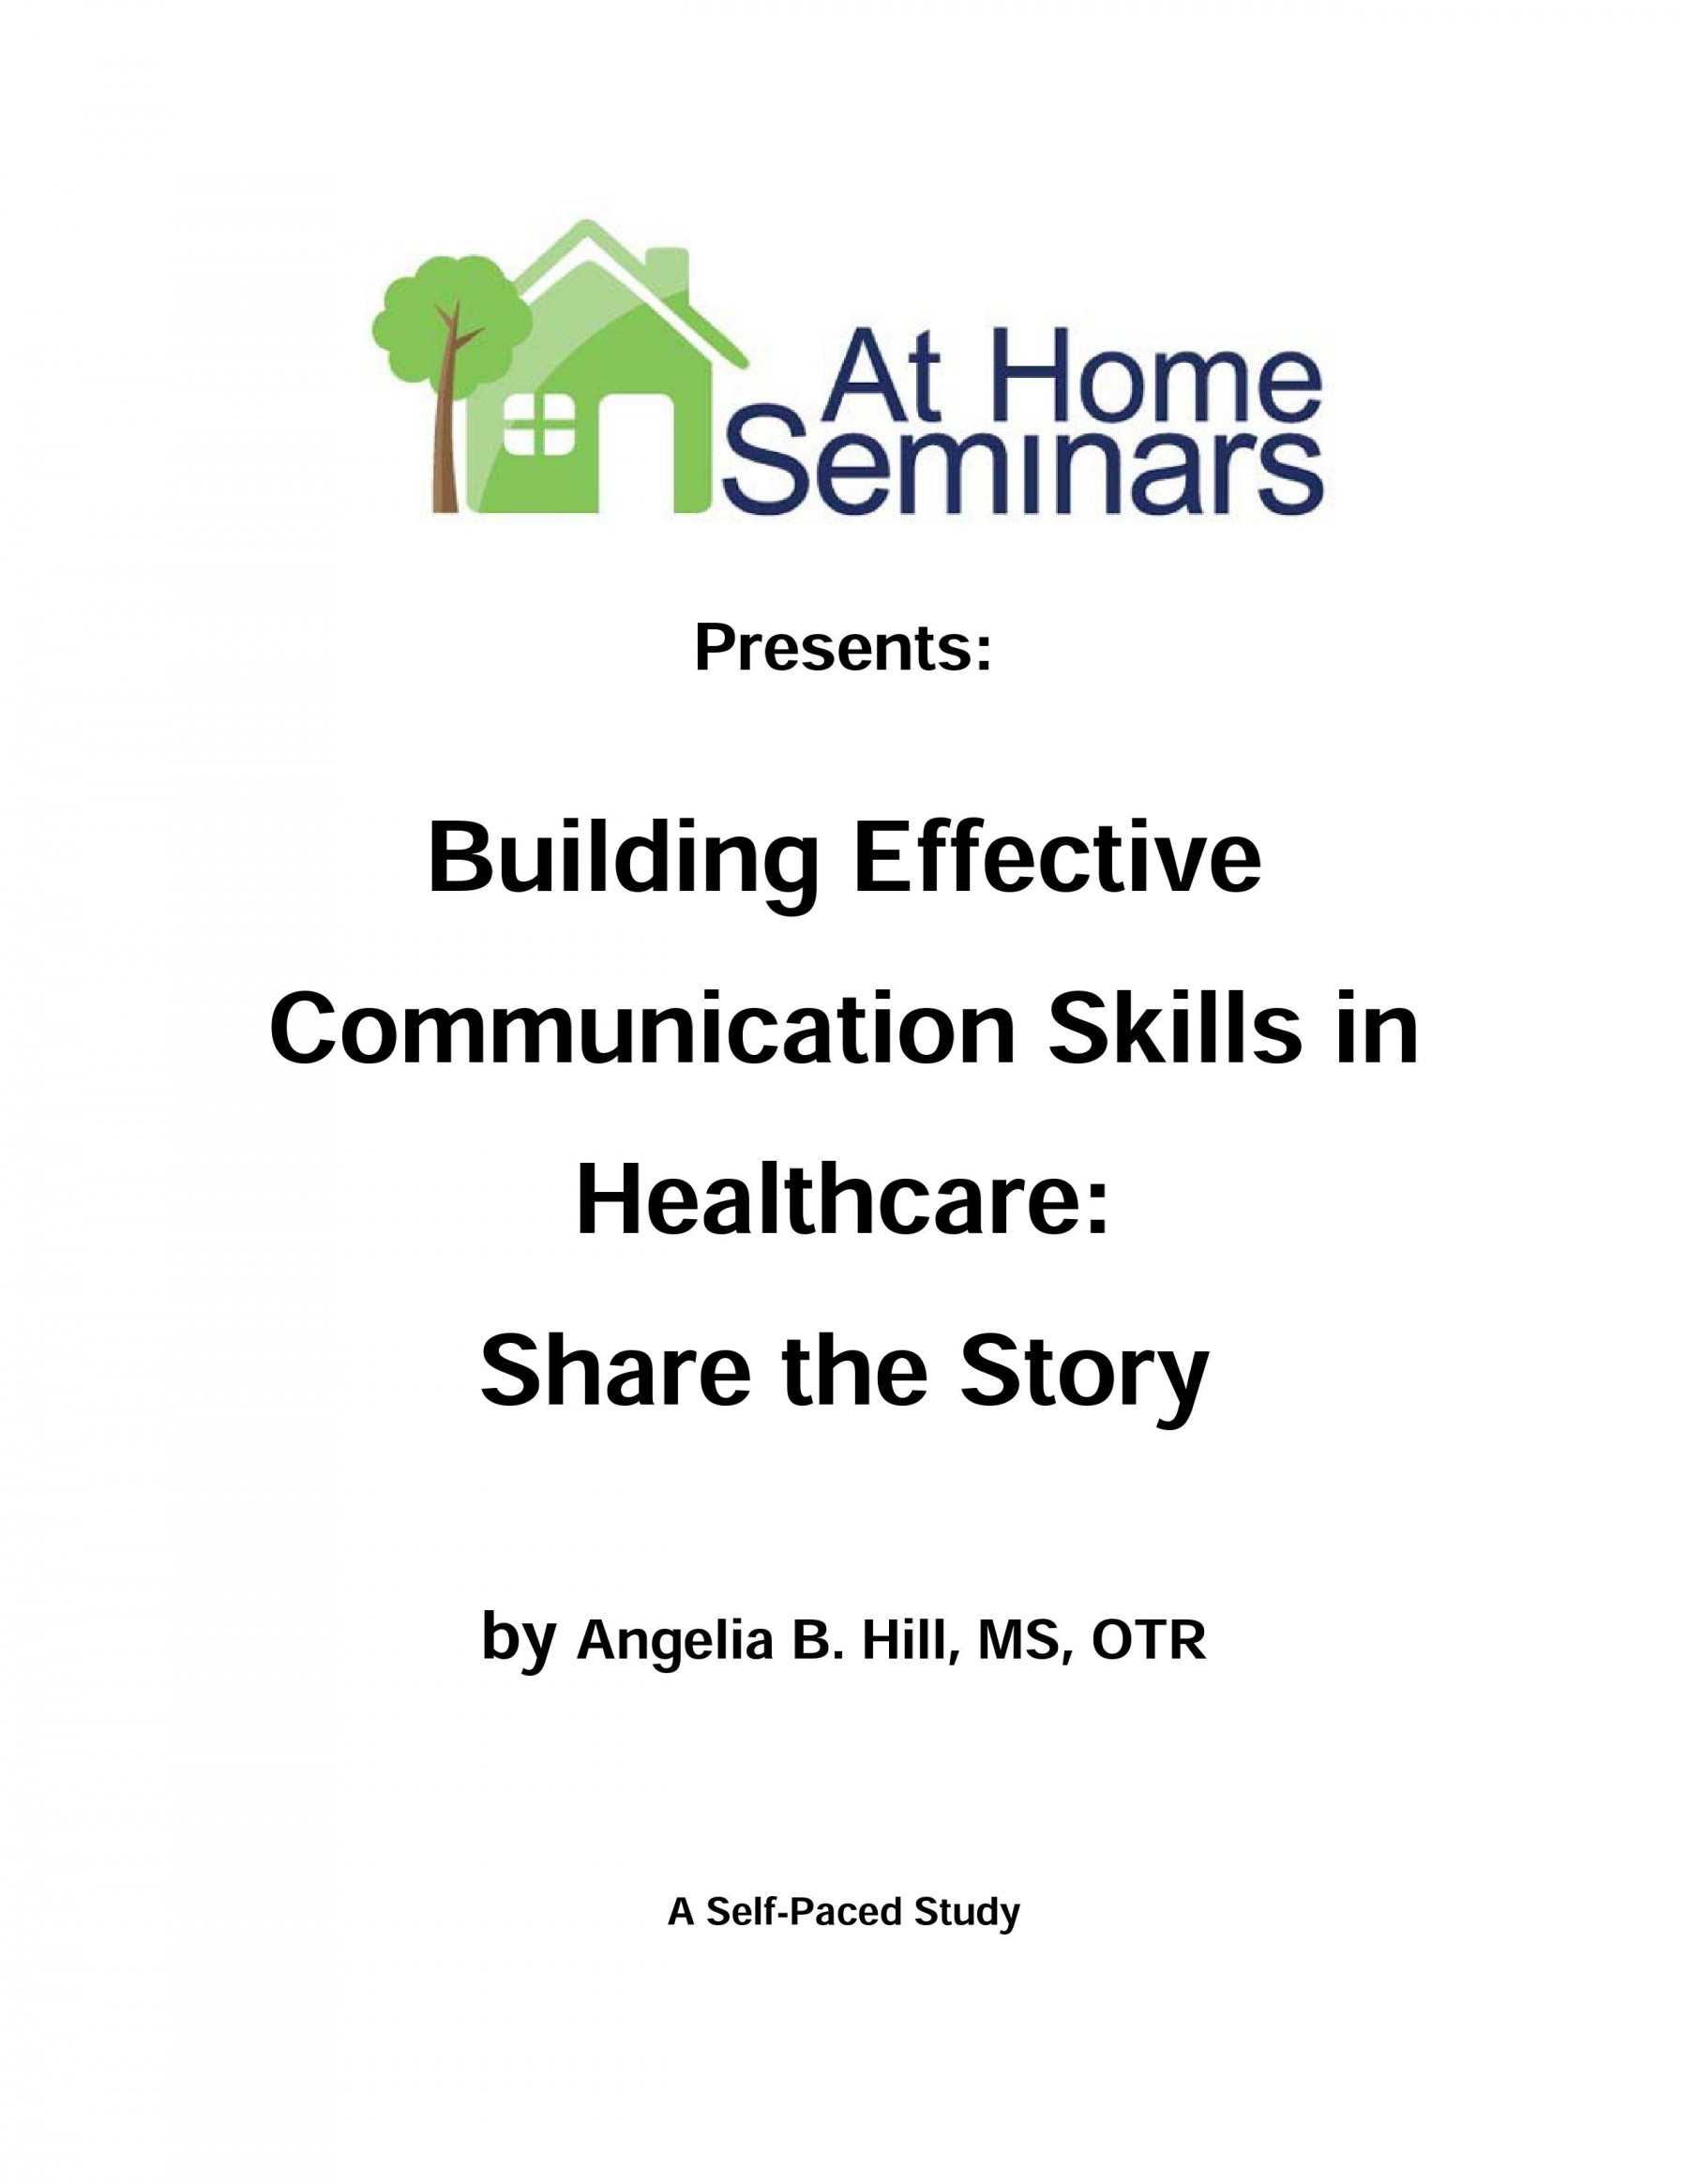 Building Effective Communication Skills In Healthcare